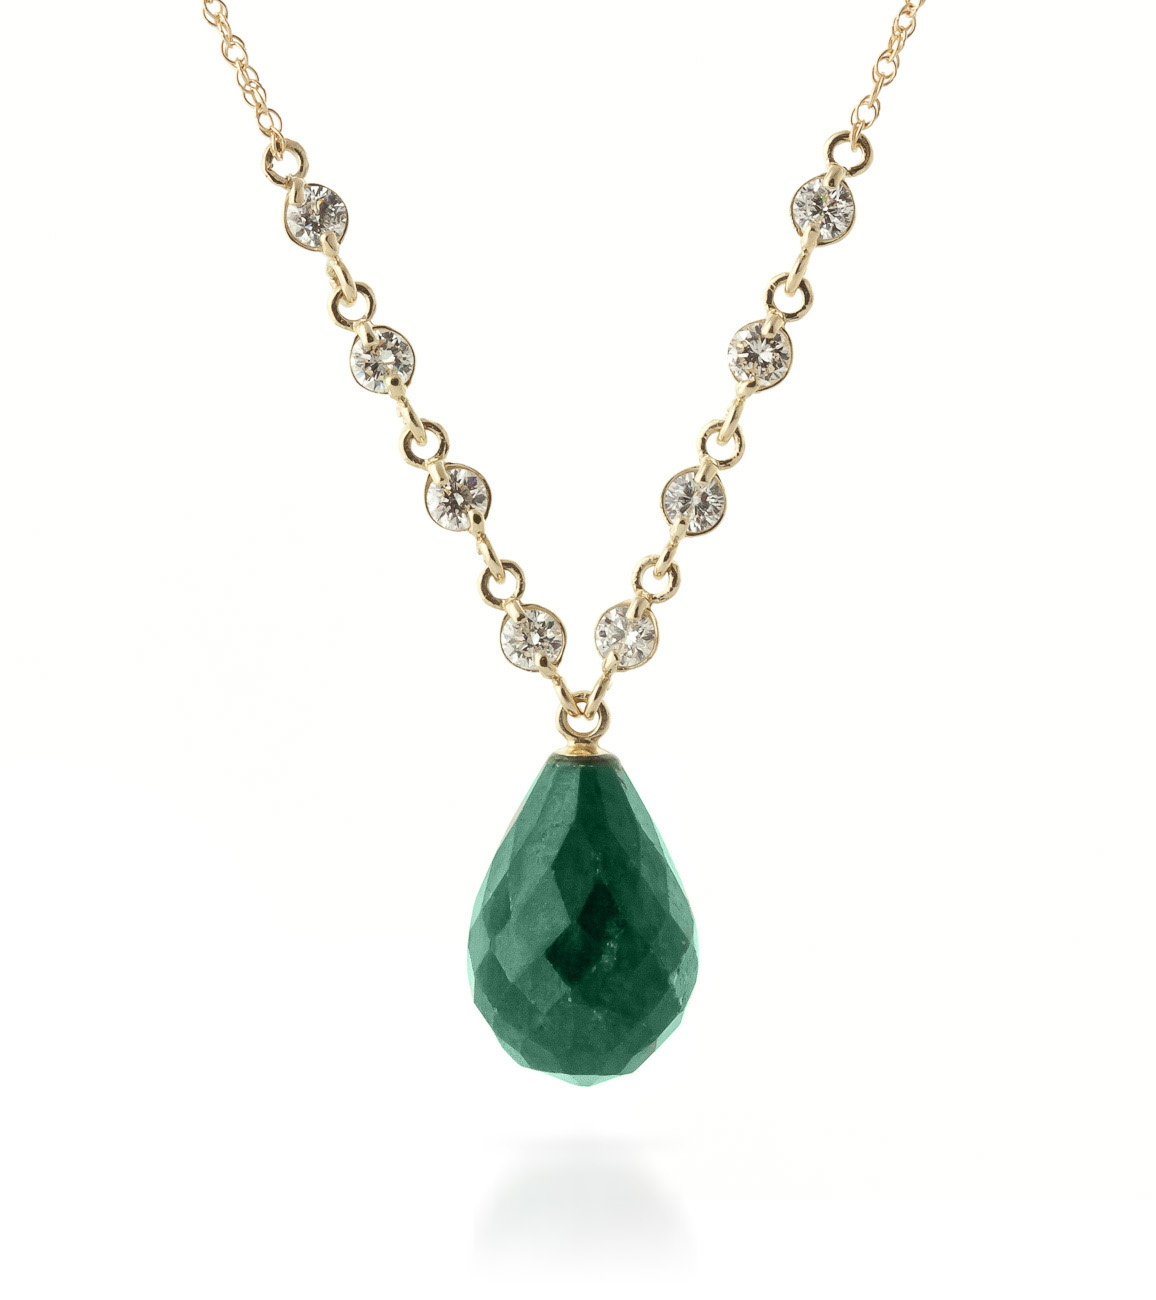 Emerald and Diamond Pendant Necklace 14.8ct in 9ct Gold